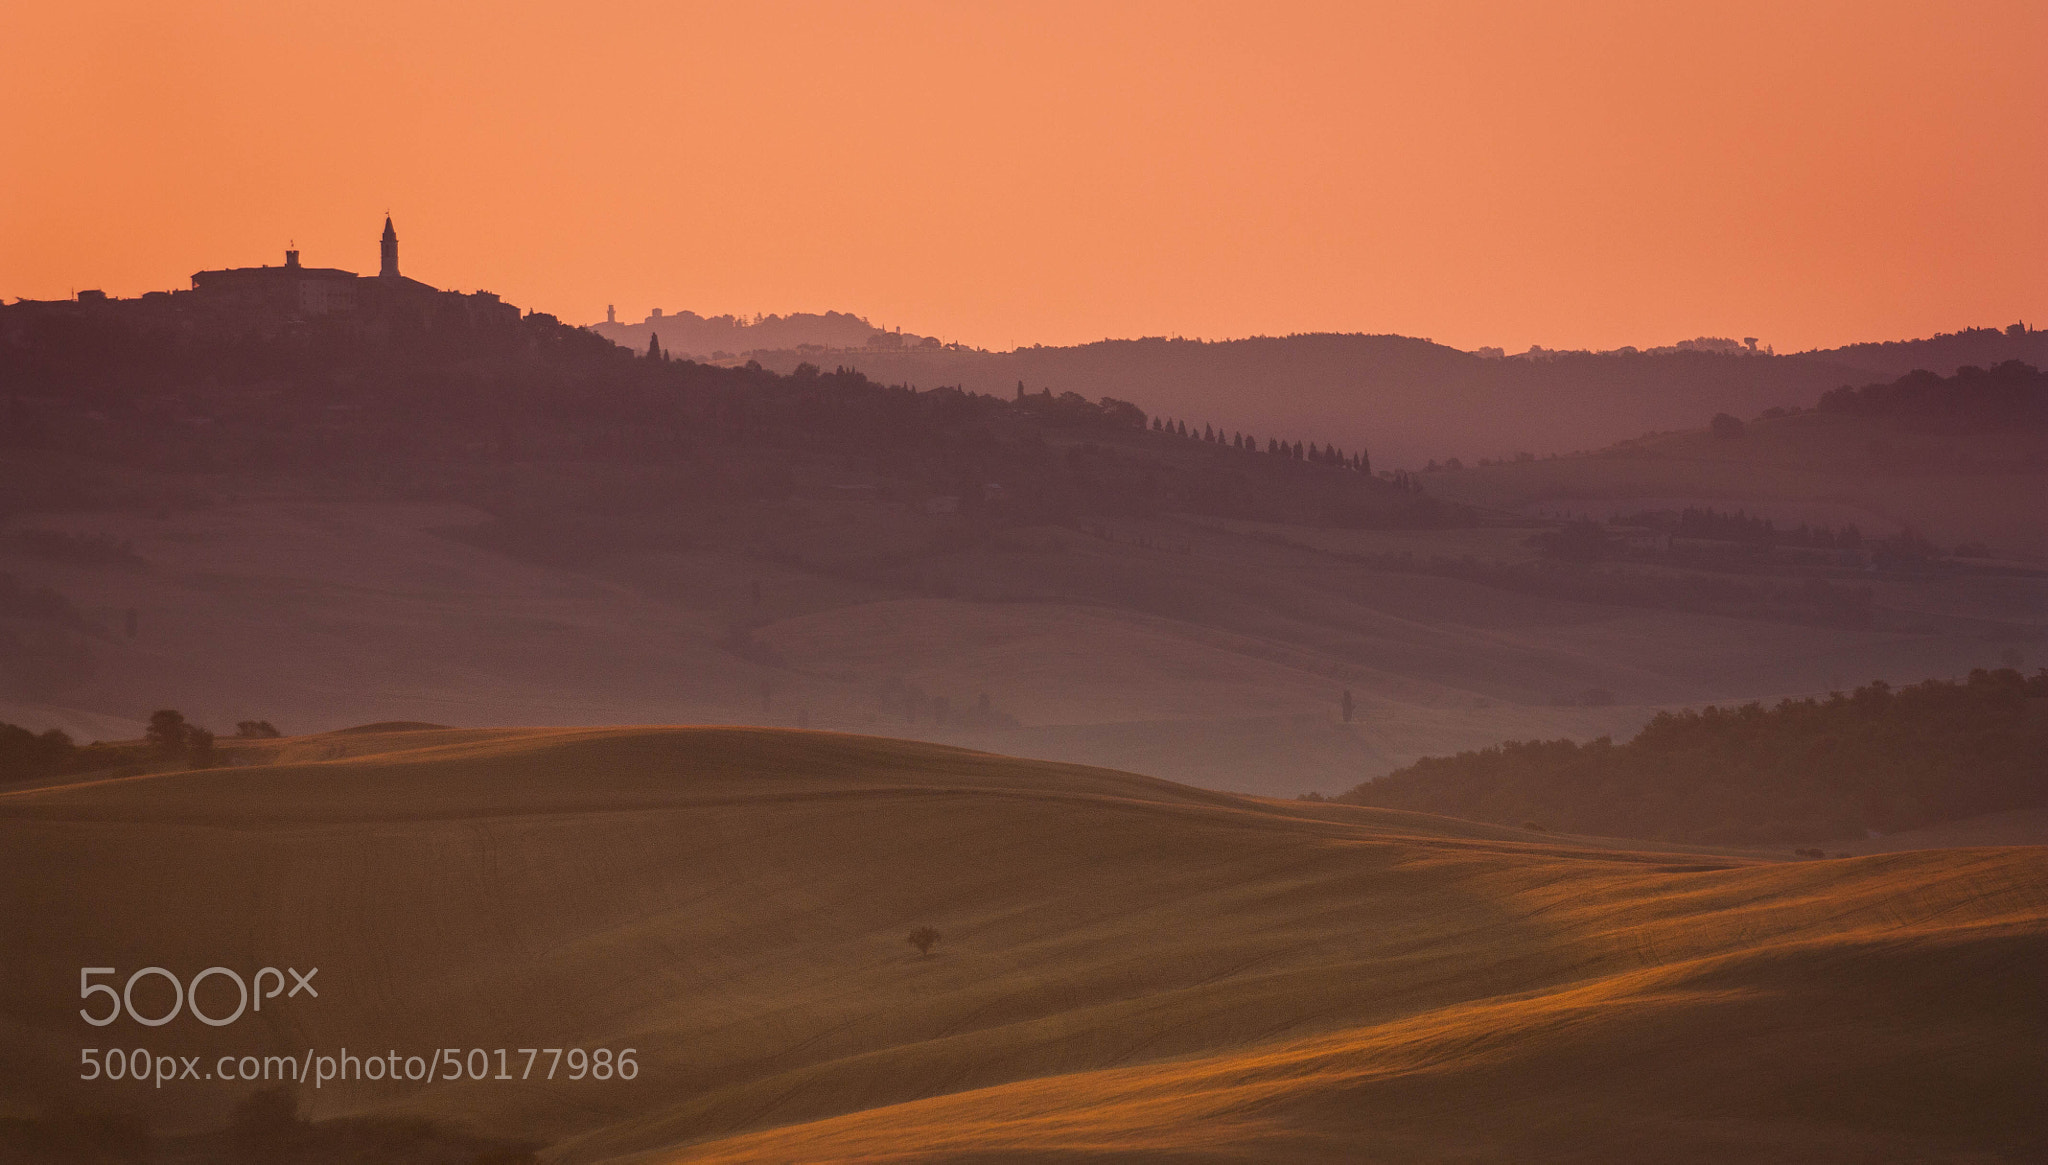 Photograph PIENZA by Stefano Termanini on 500px